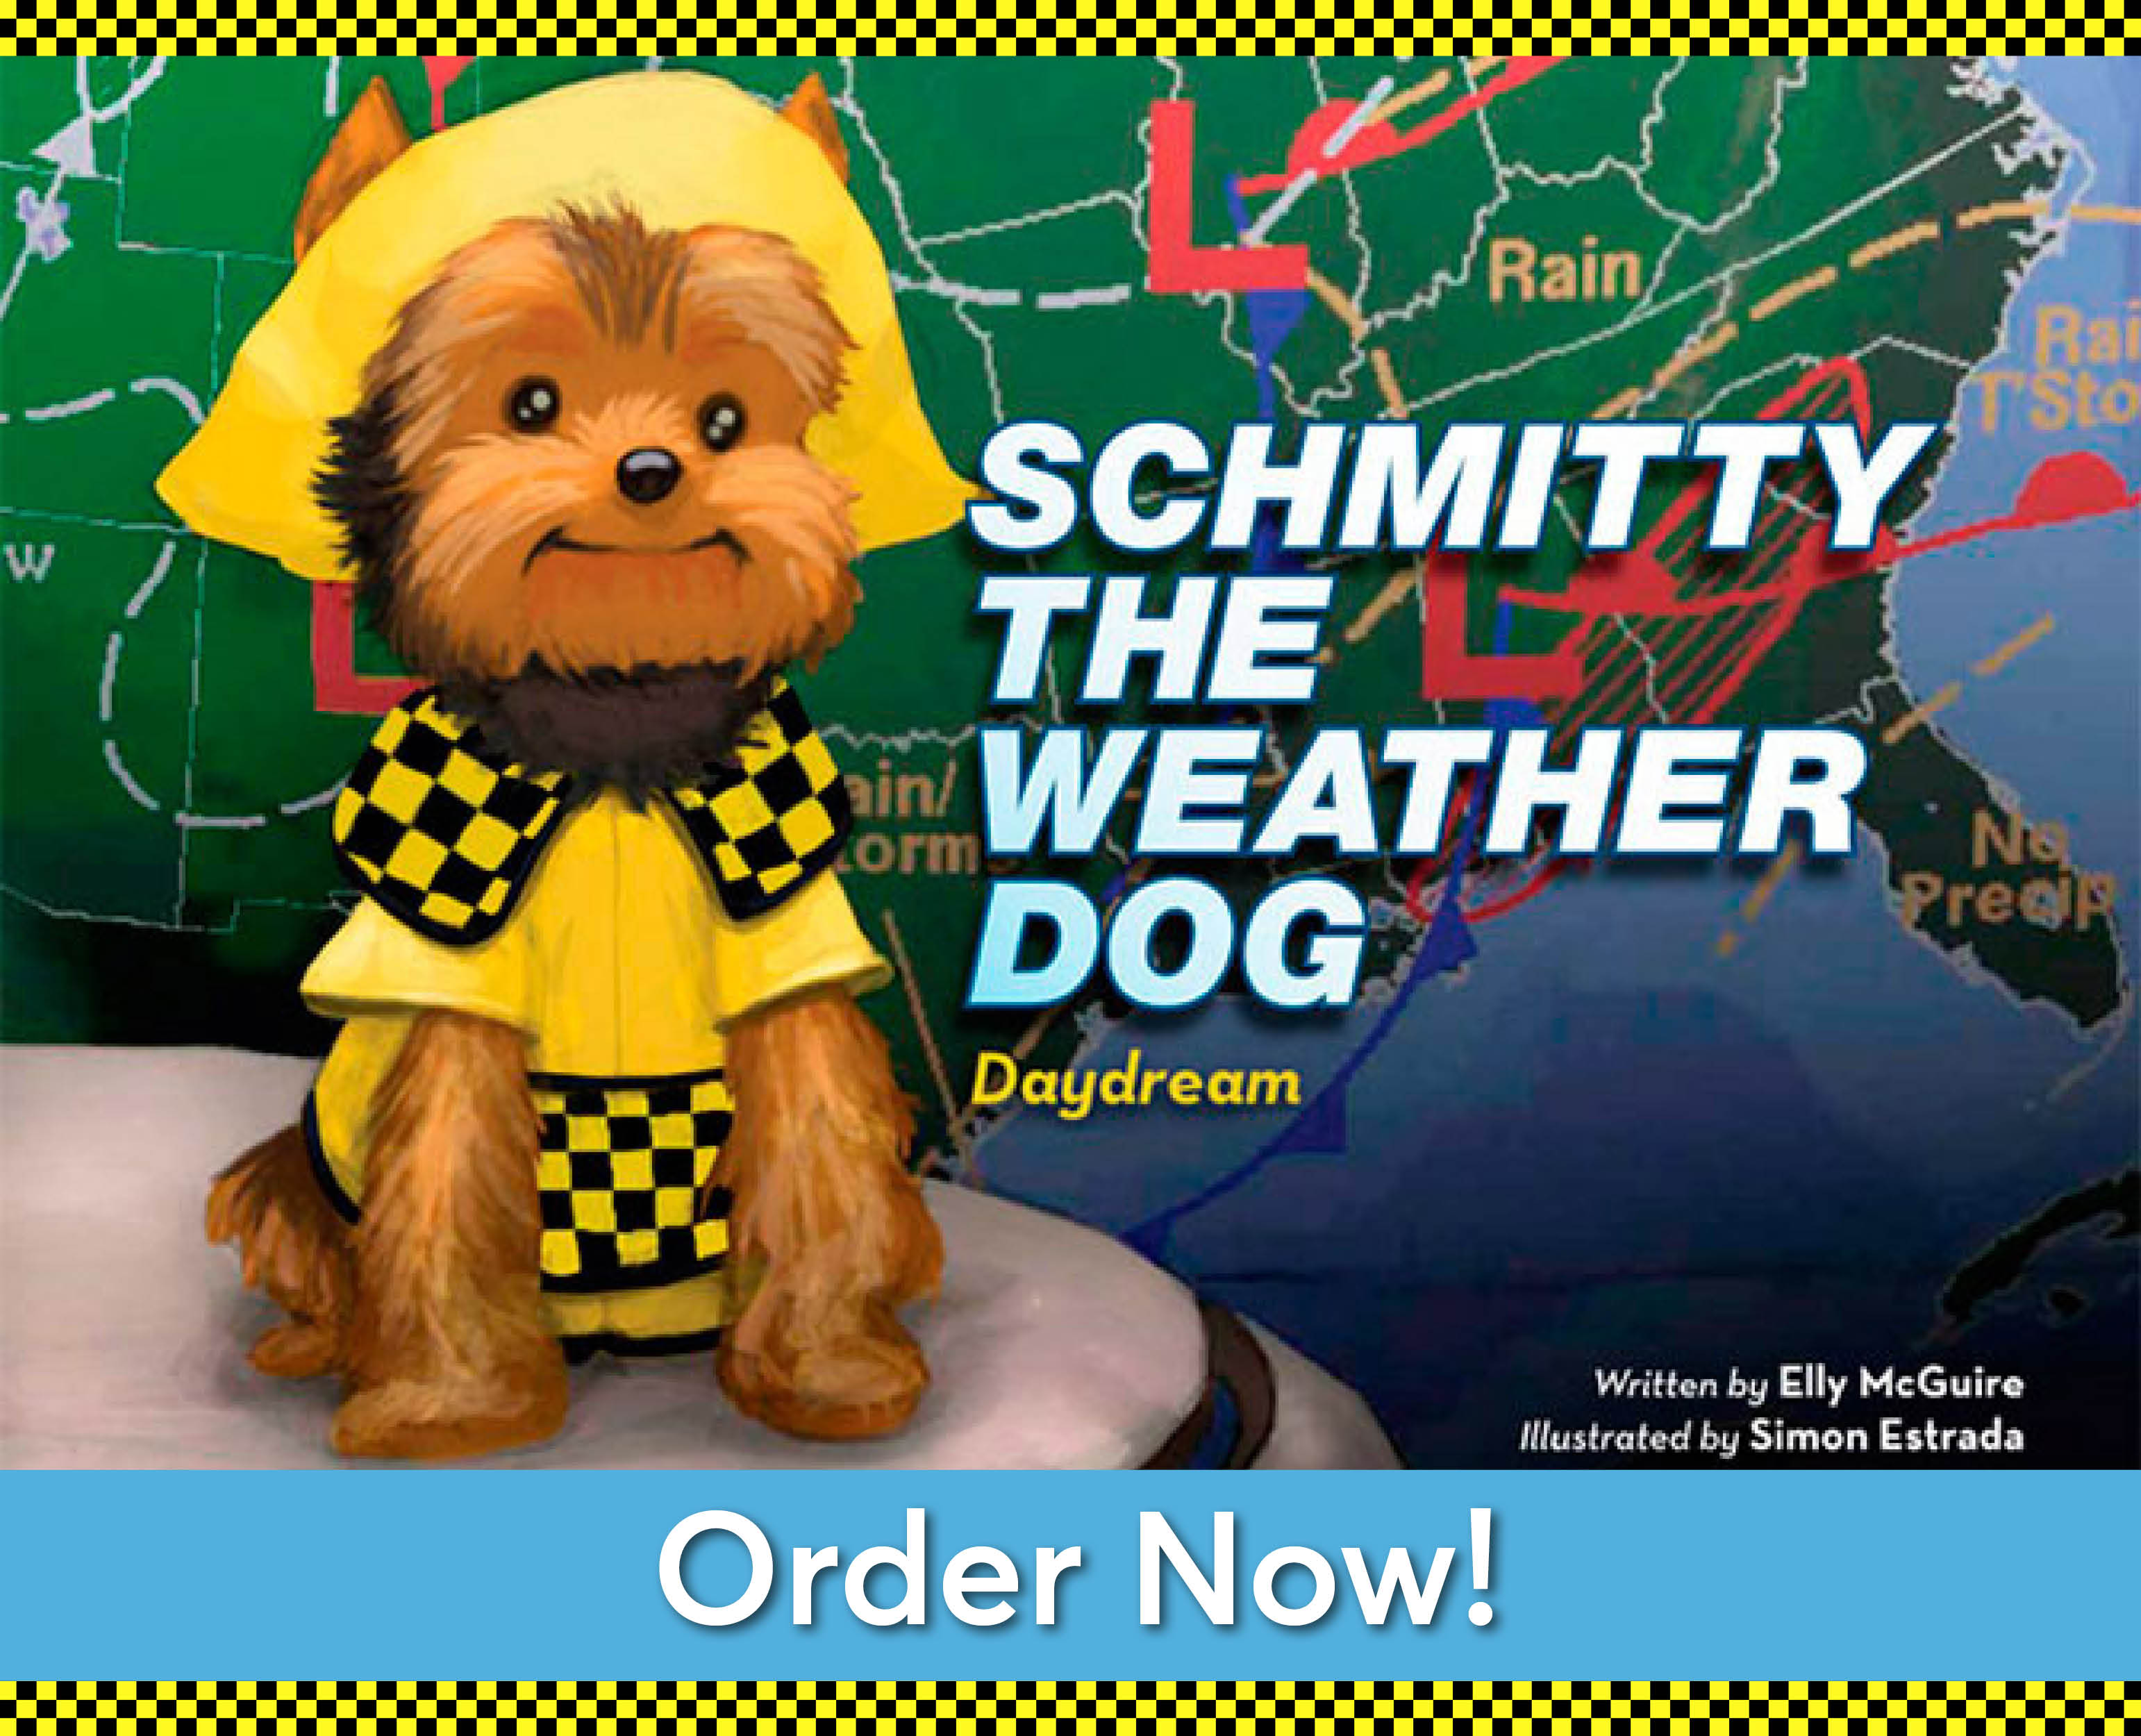 Schmitty's New Weather Book